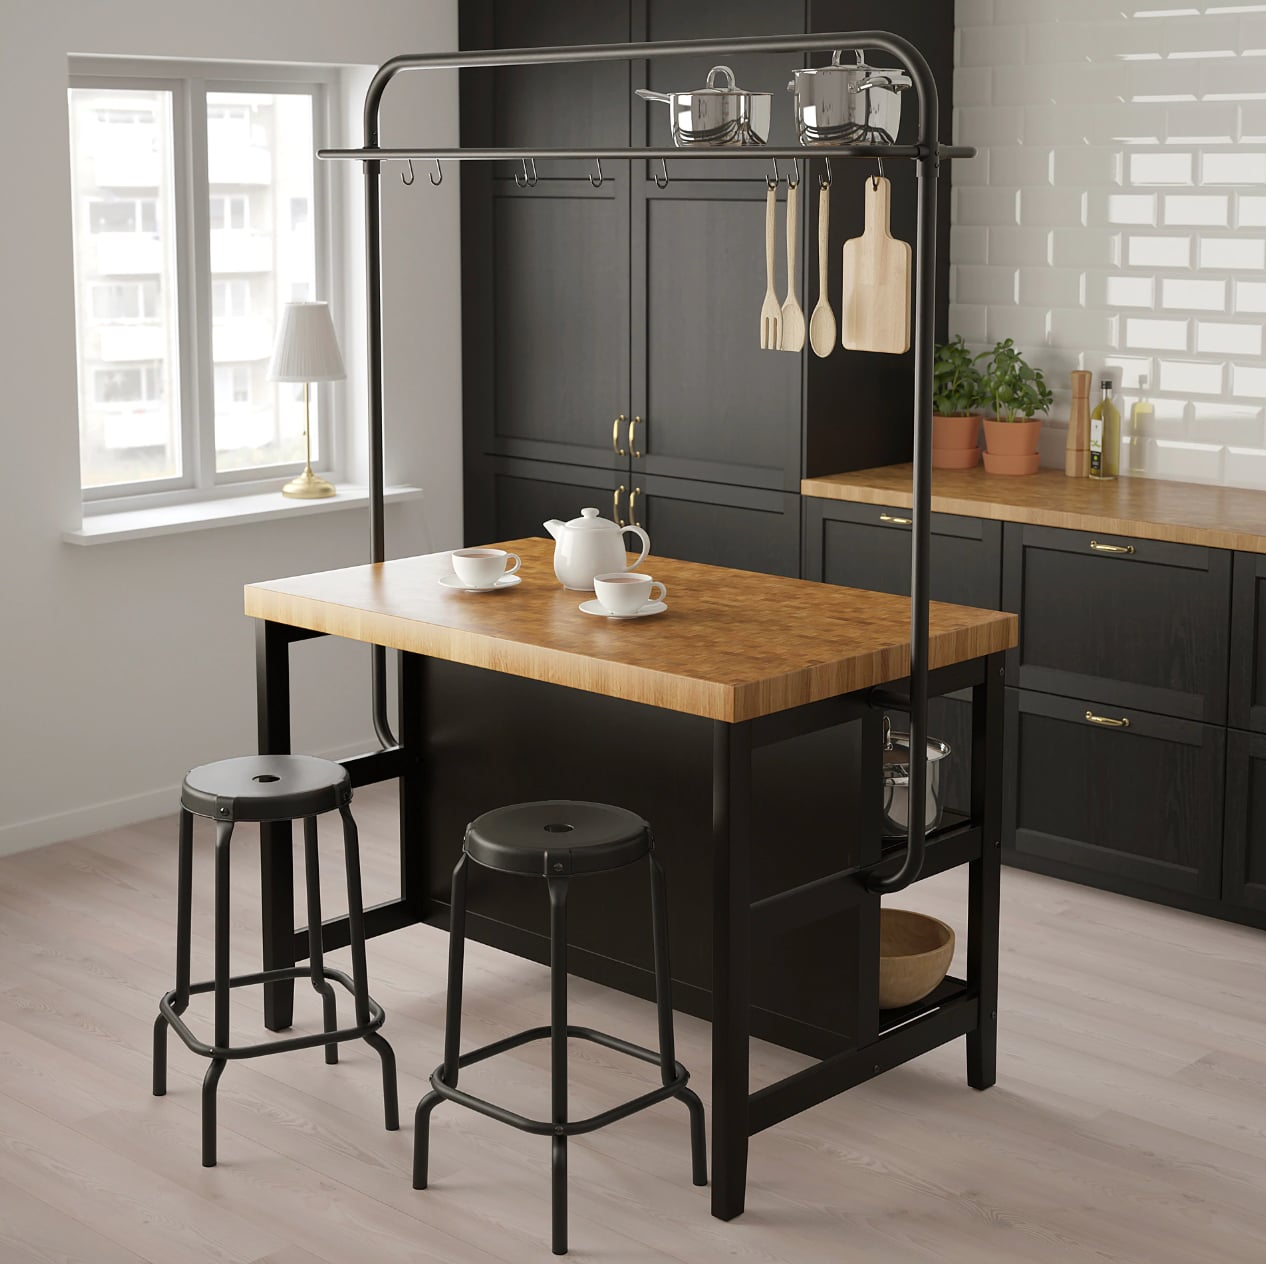 Vadholma Kitchen Island With Rack Best Ikea Kitchen Products For Small Spaces Popsugar Home Uk Photo 8